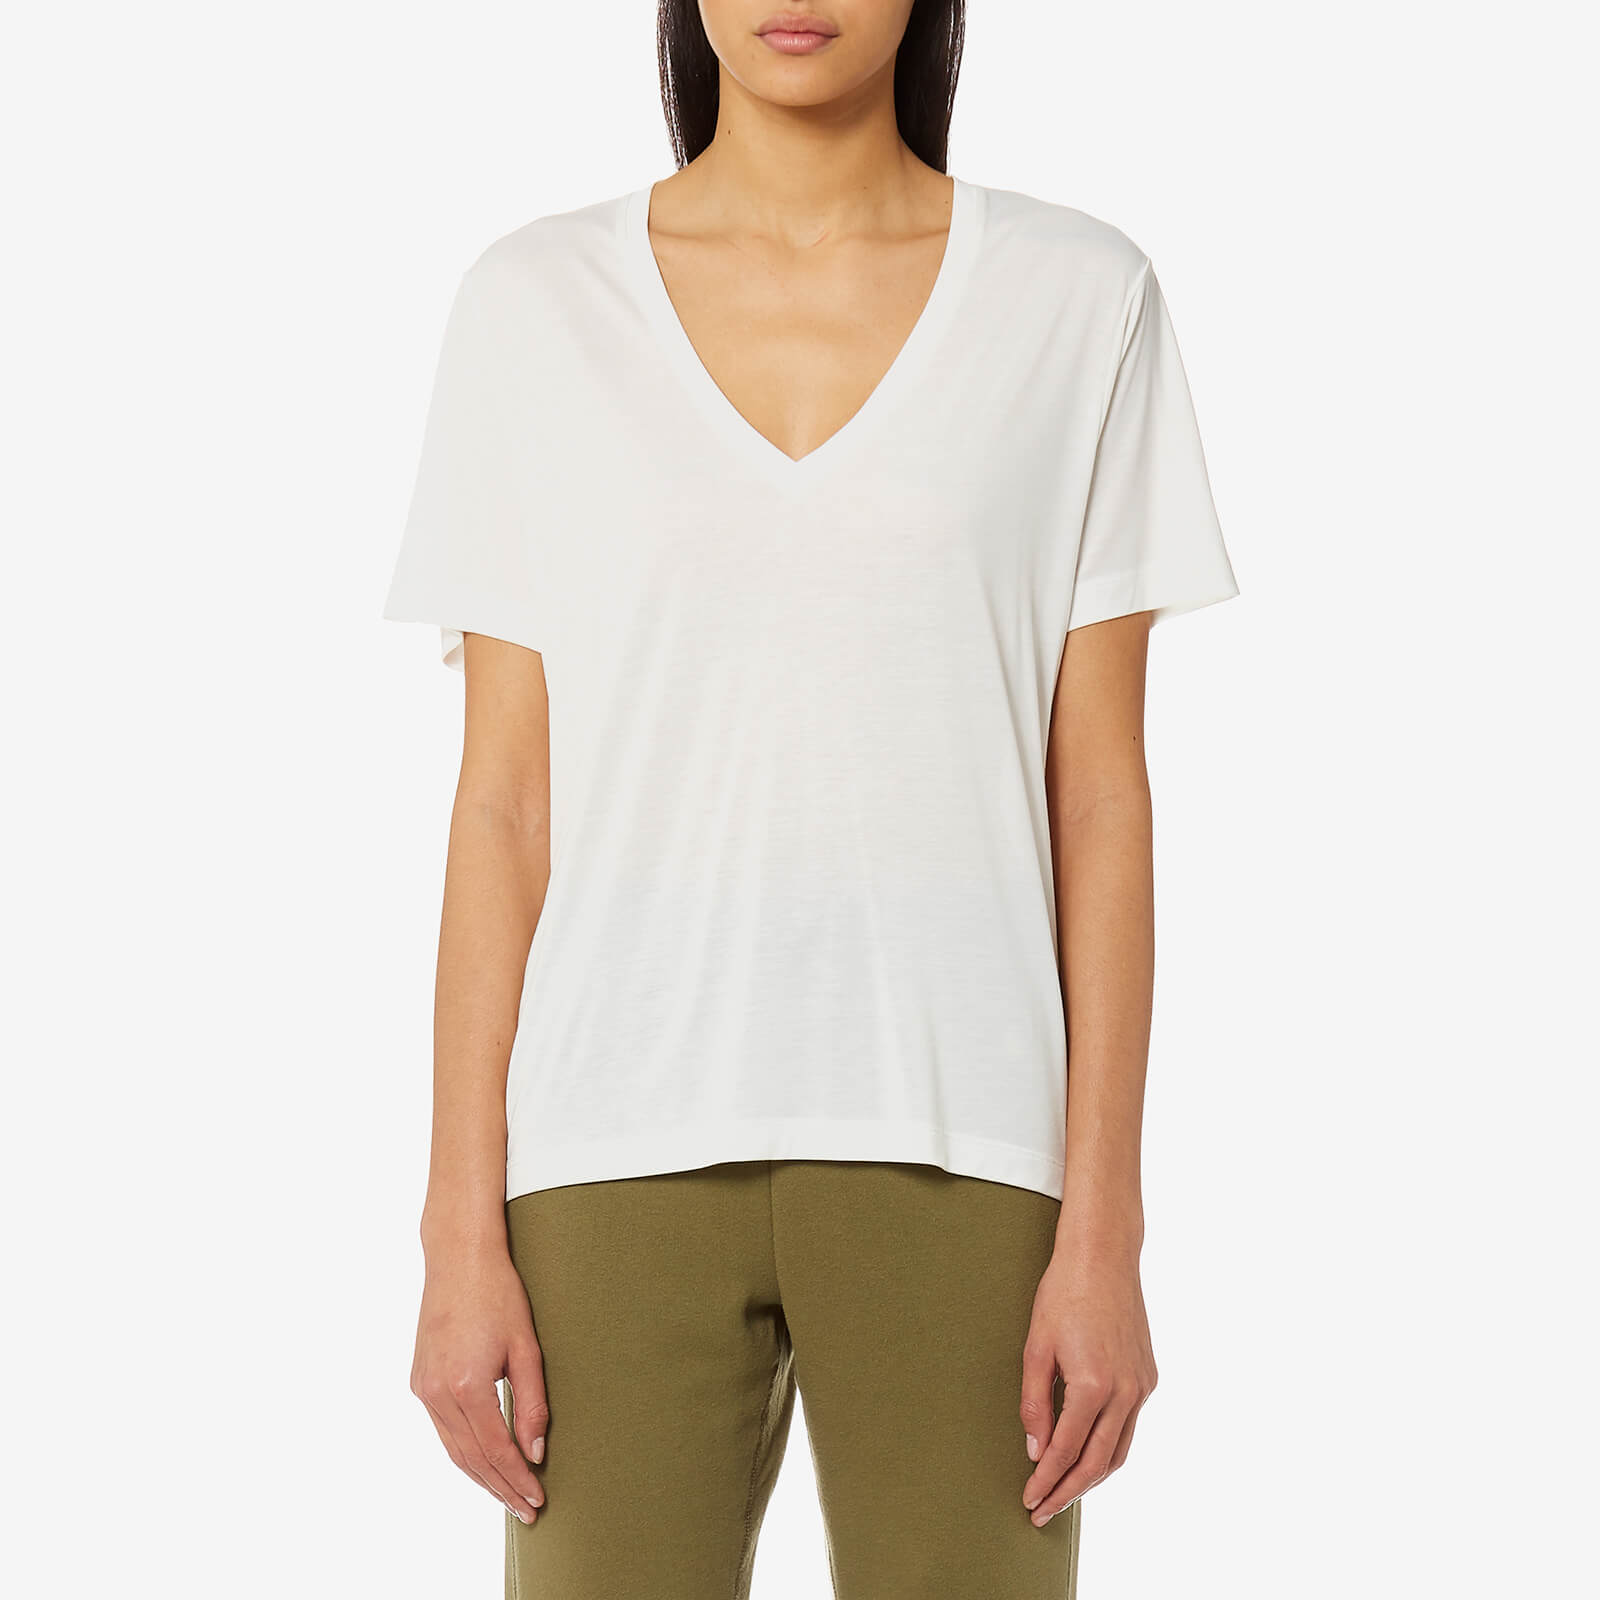 a64fb77644fca Polo Ralph Lauren Women s V Neck T-Shirt - White - Free UK Delivery over £50